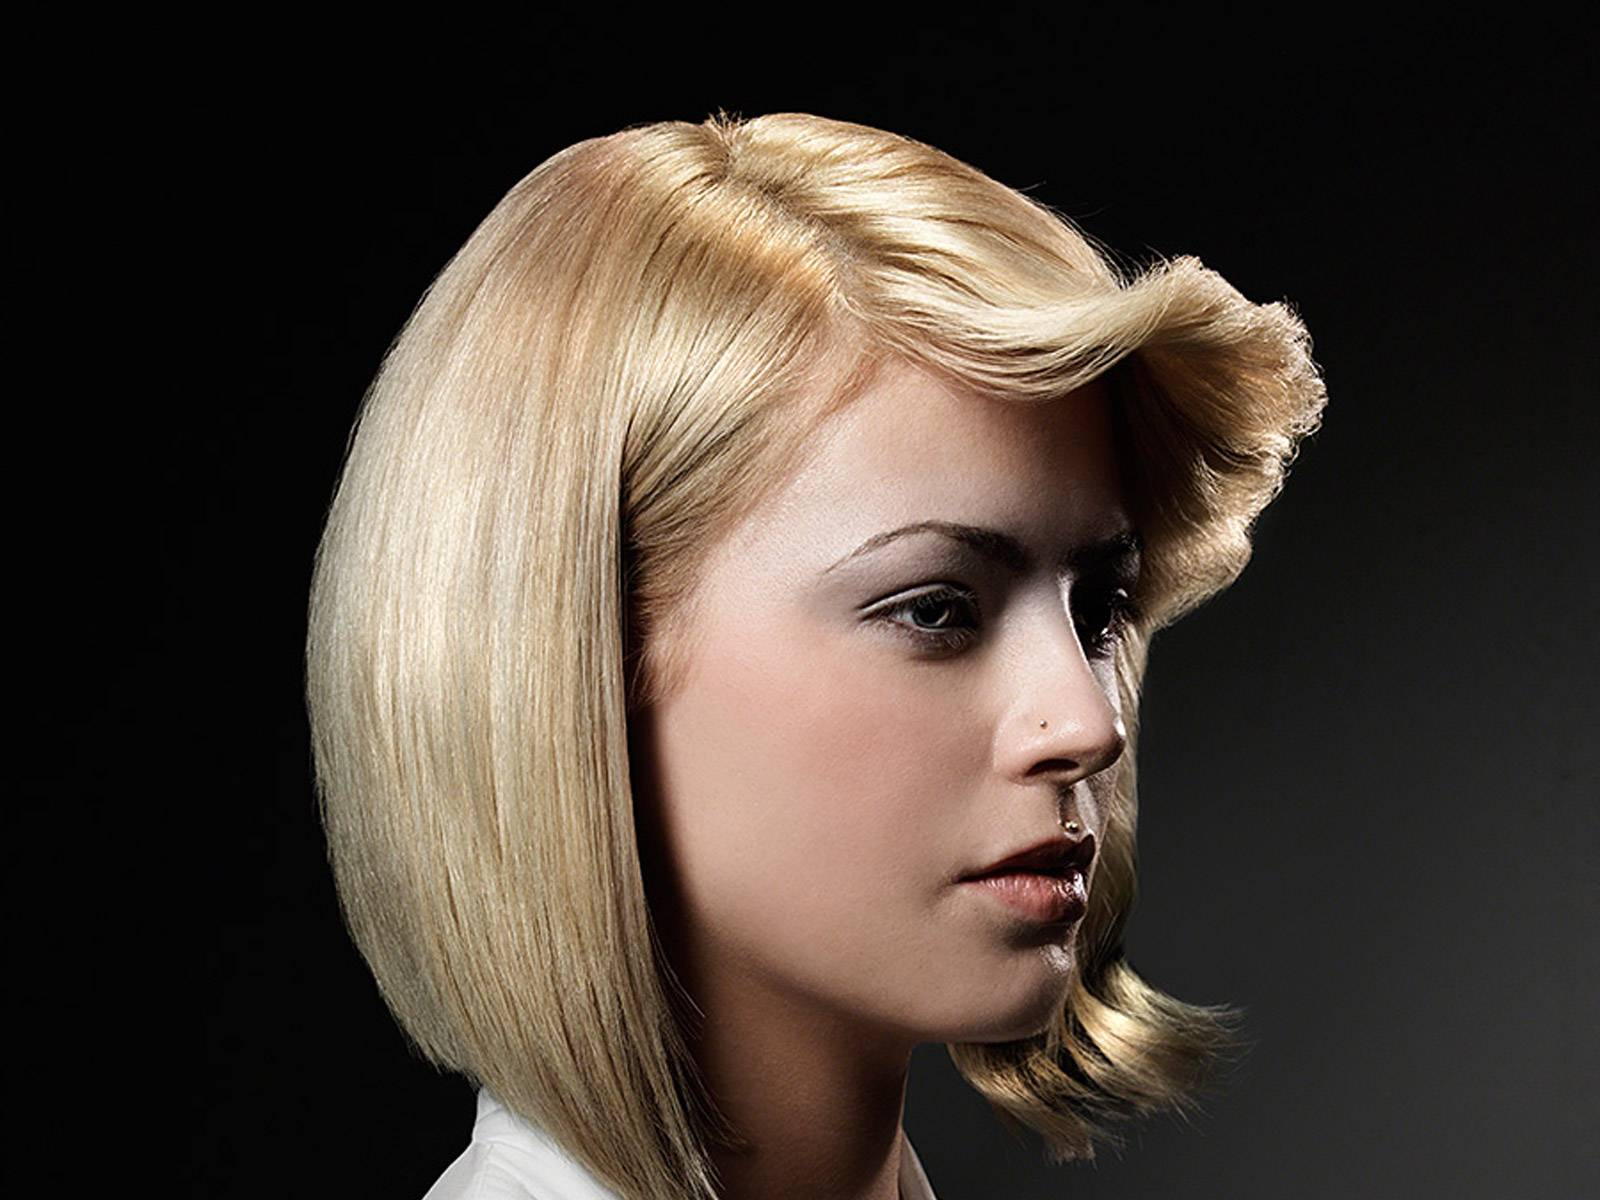 blonde-flick-fringe-model.jpg